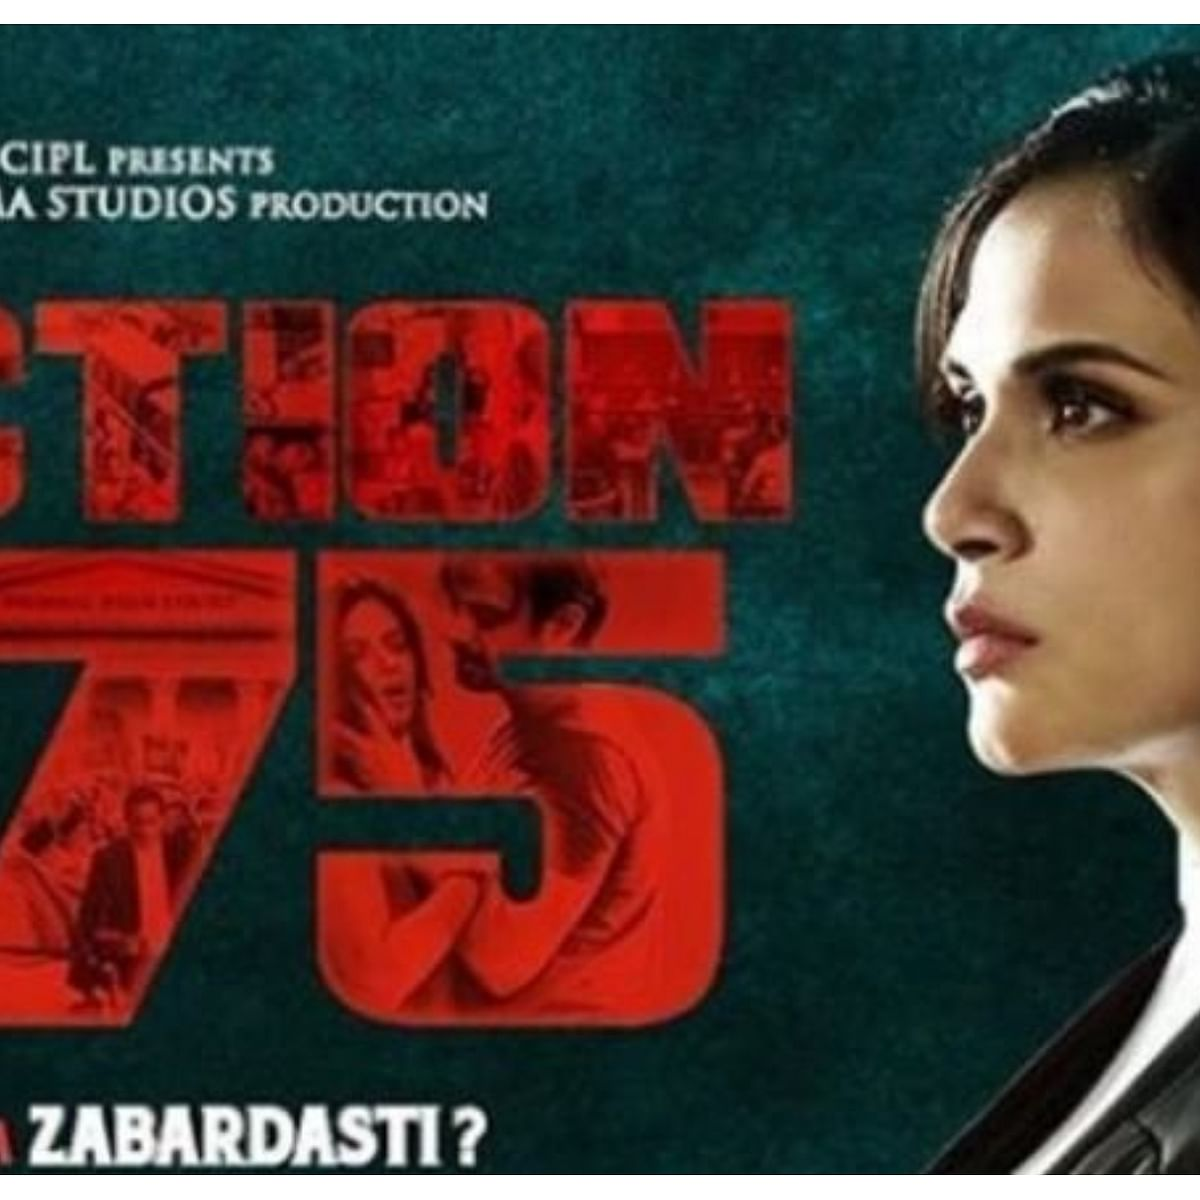 'Section 375': Akshaye Khanna, Richa Chadha shine in relevant film